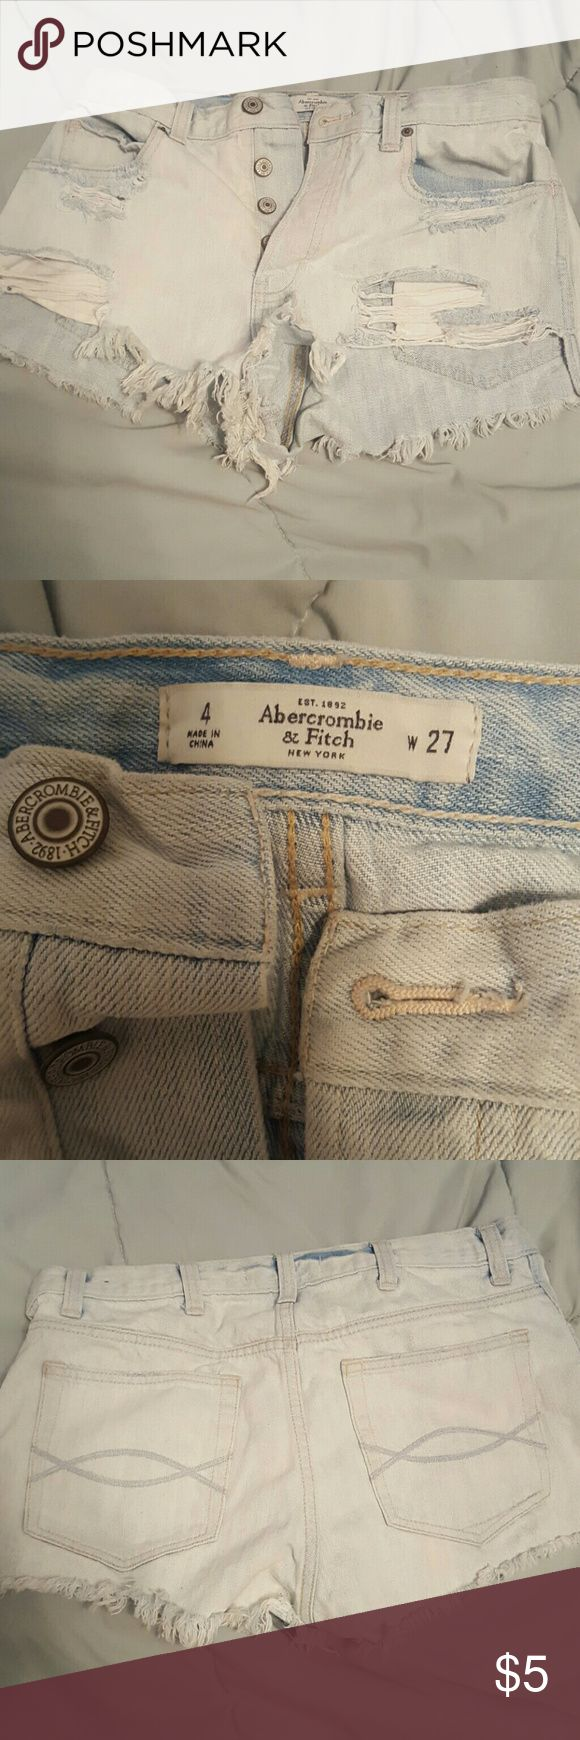 Abercrombie and fitch shorts Light blue, destroyed short shorts Abercrombie & Fitch Shorts Jean Shorts